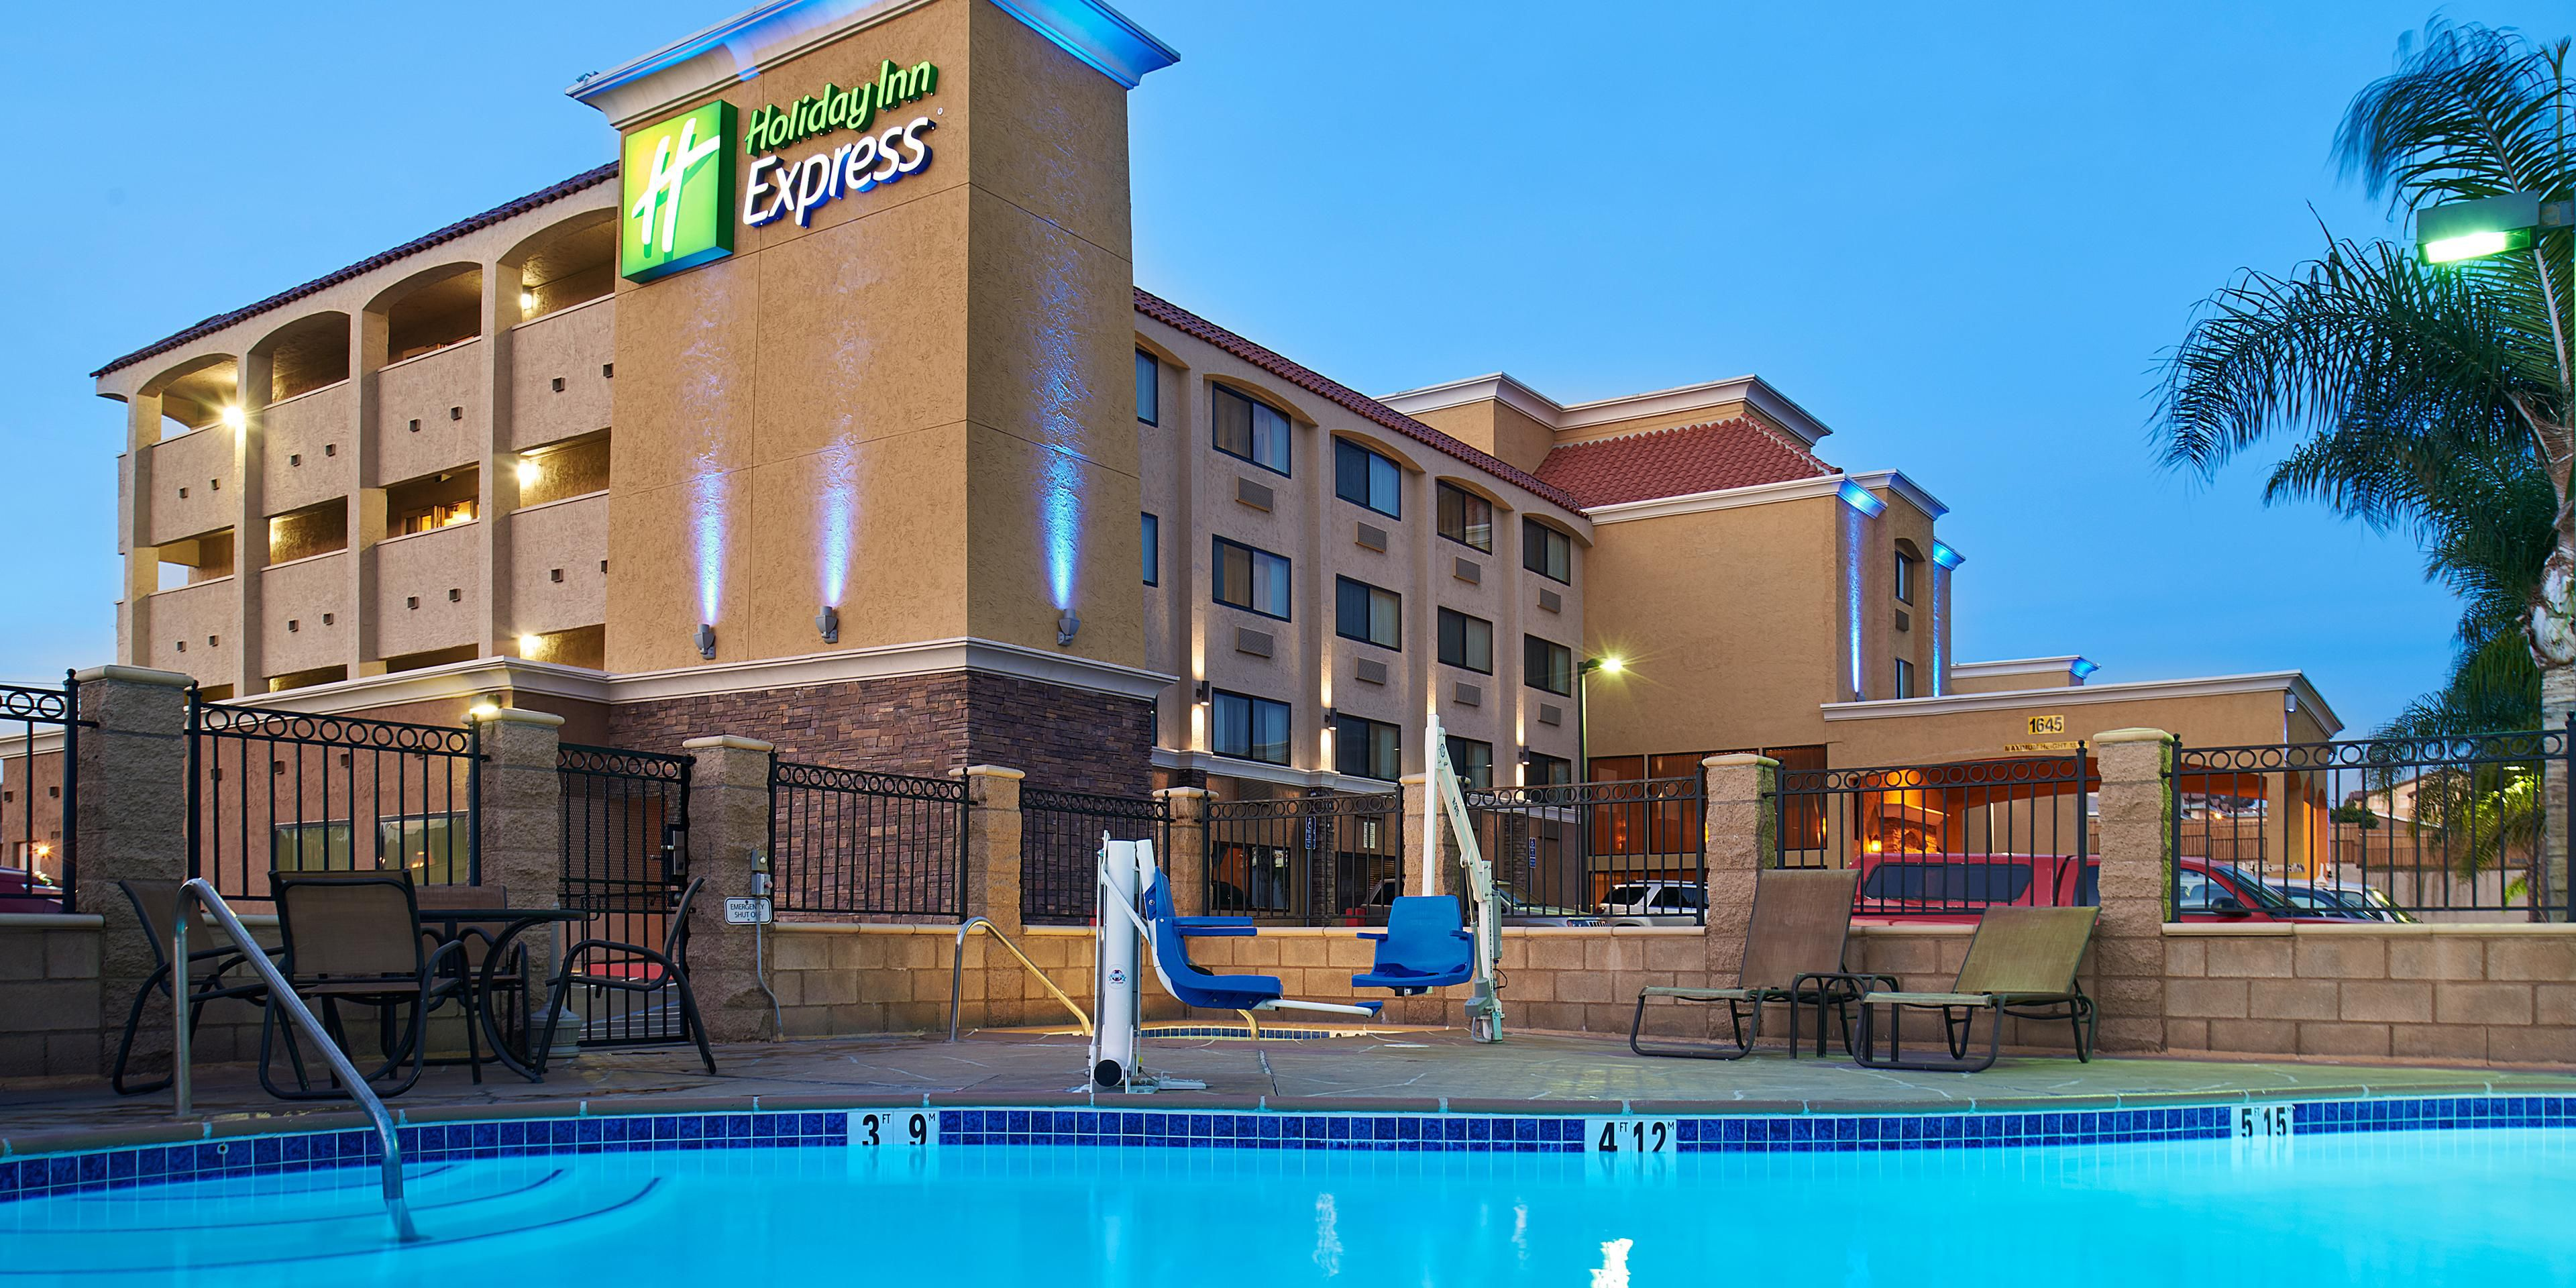 Holiday Inn Express National City 3808661037 2x1